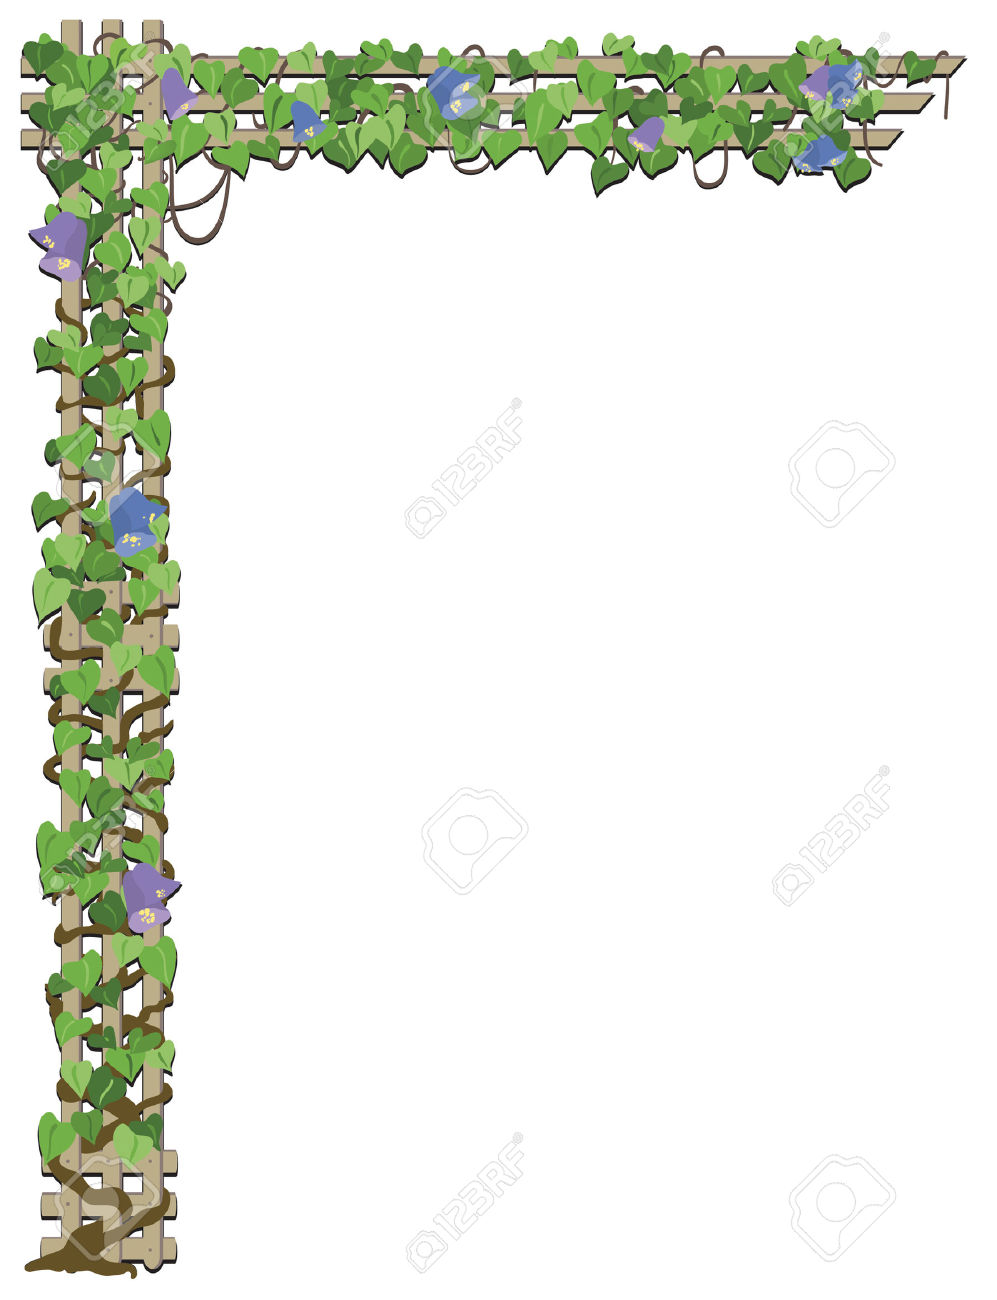 Flower Vine Growing On Treliis Royalty Free Cliparts, Vectors, And.